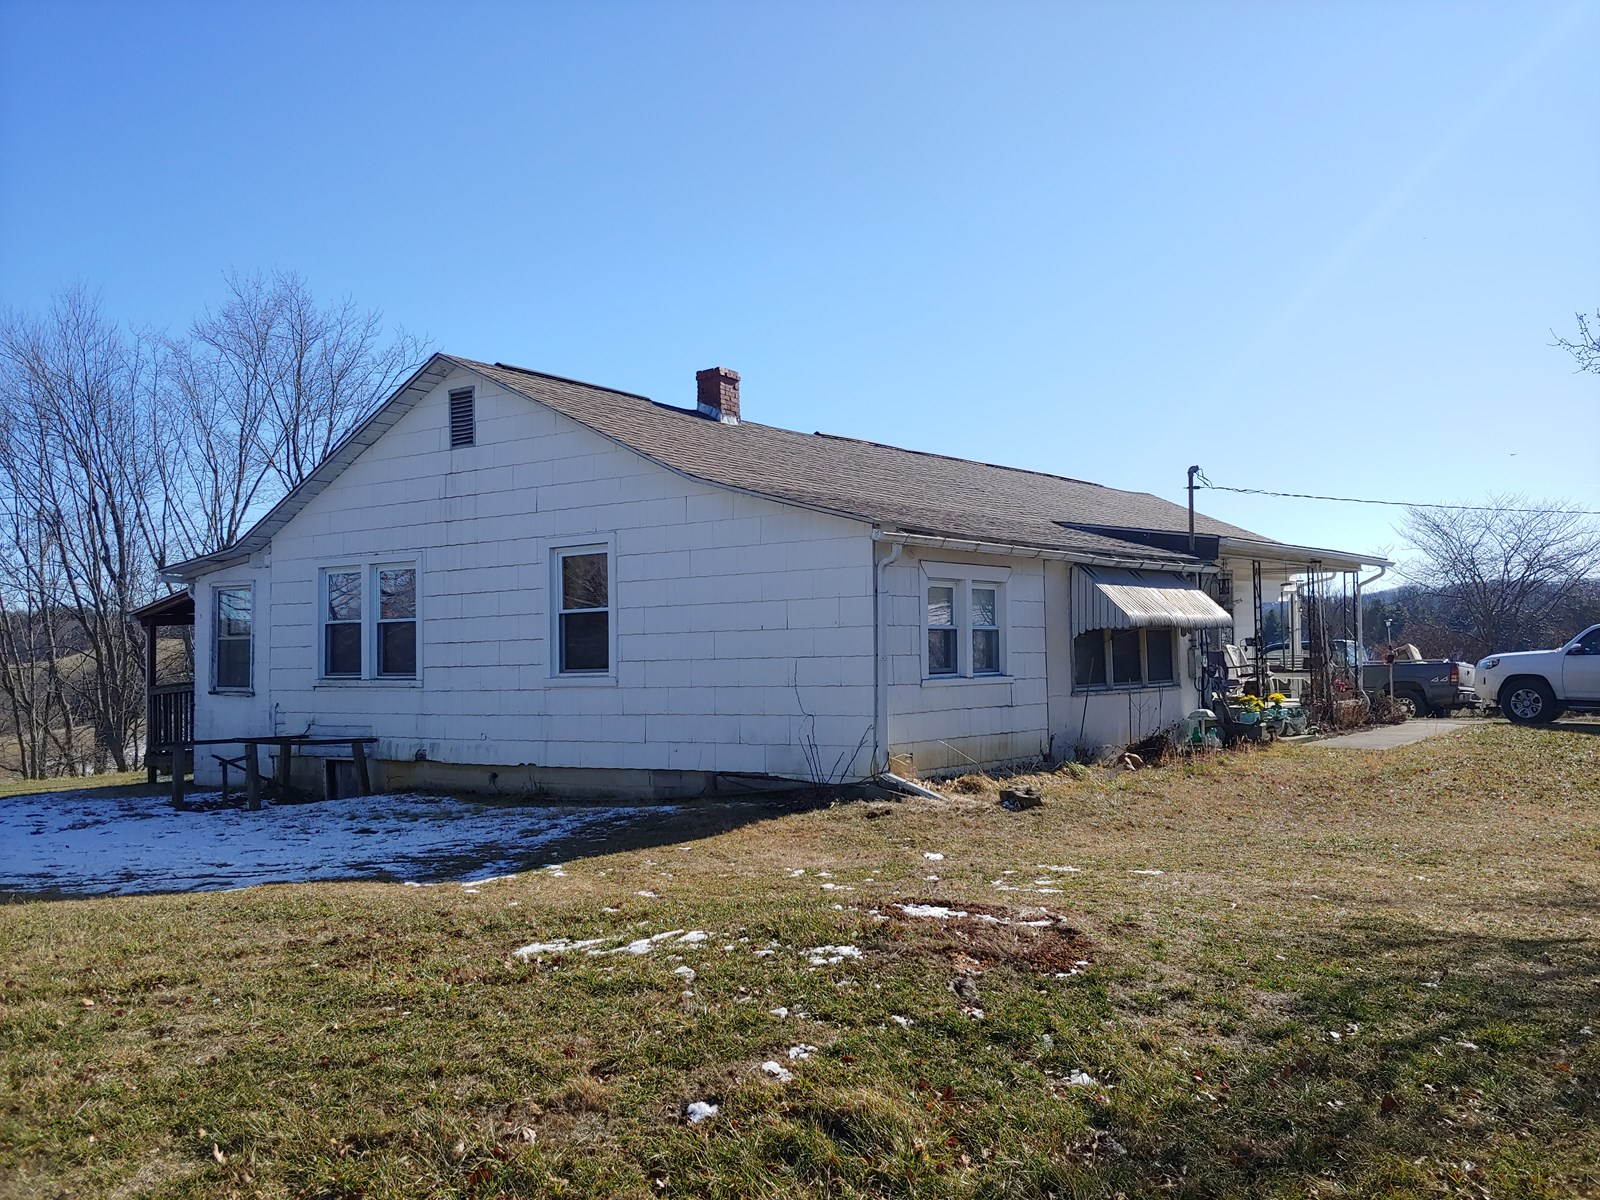 Country Home and Farmland for Sale in Riner, VA!